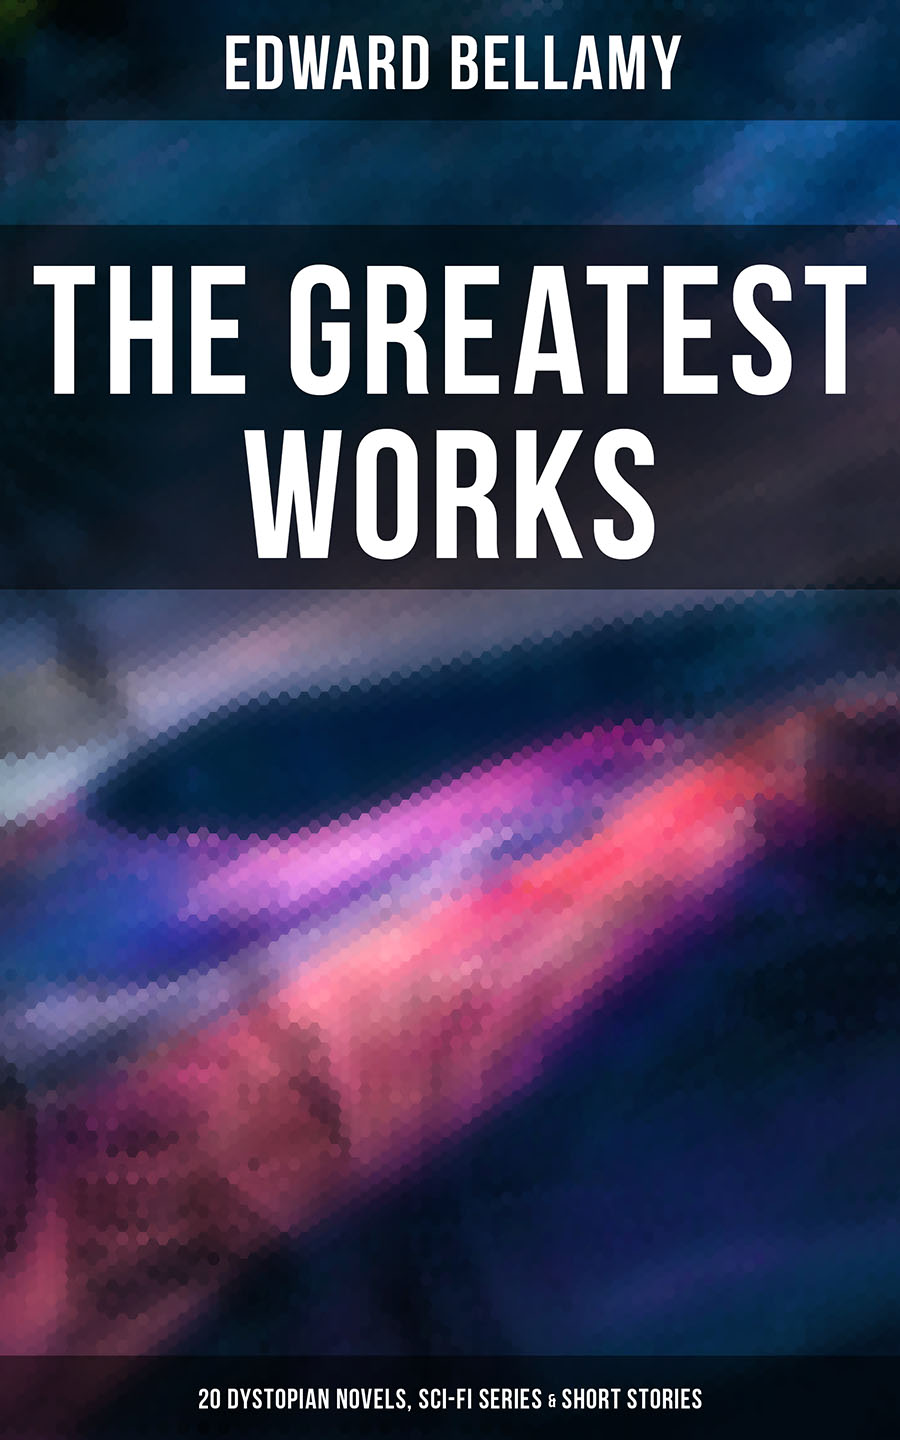 Edward Bellamy The Greatest Works of Edward Bellamy: 20 Dystopian Novels, Sci-Fi Series & Short Stories berens edward christmas stories